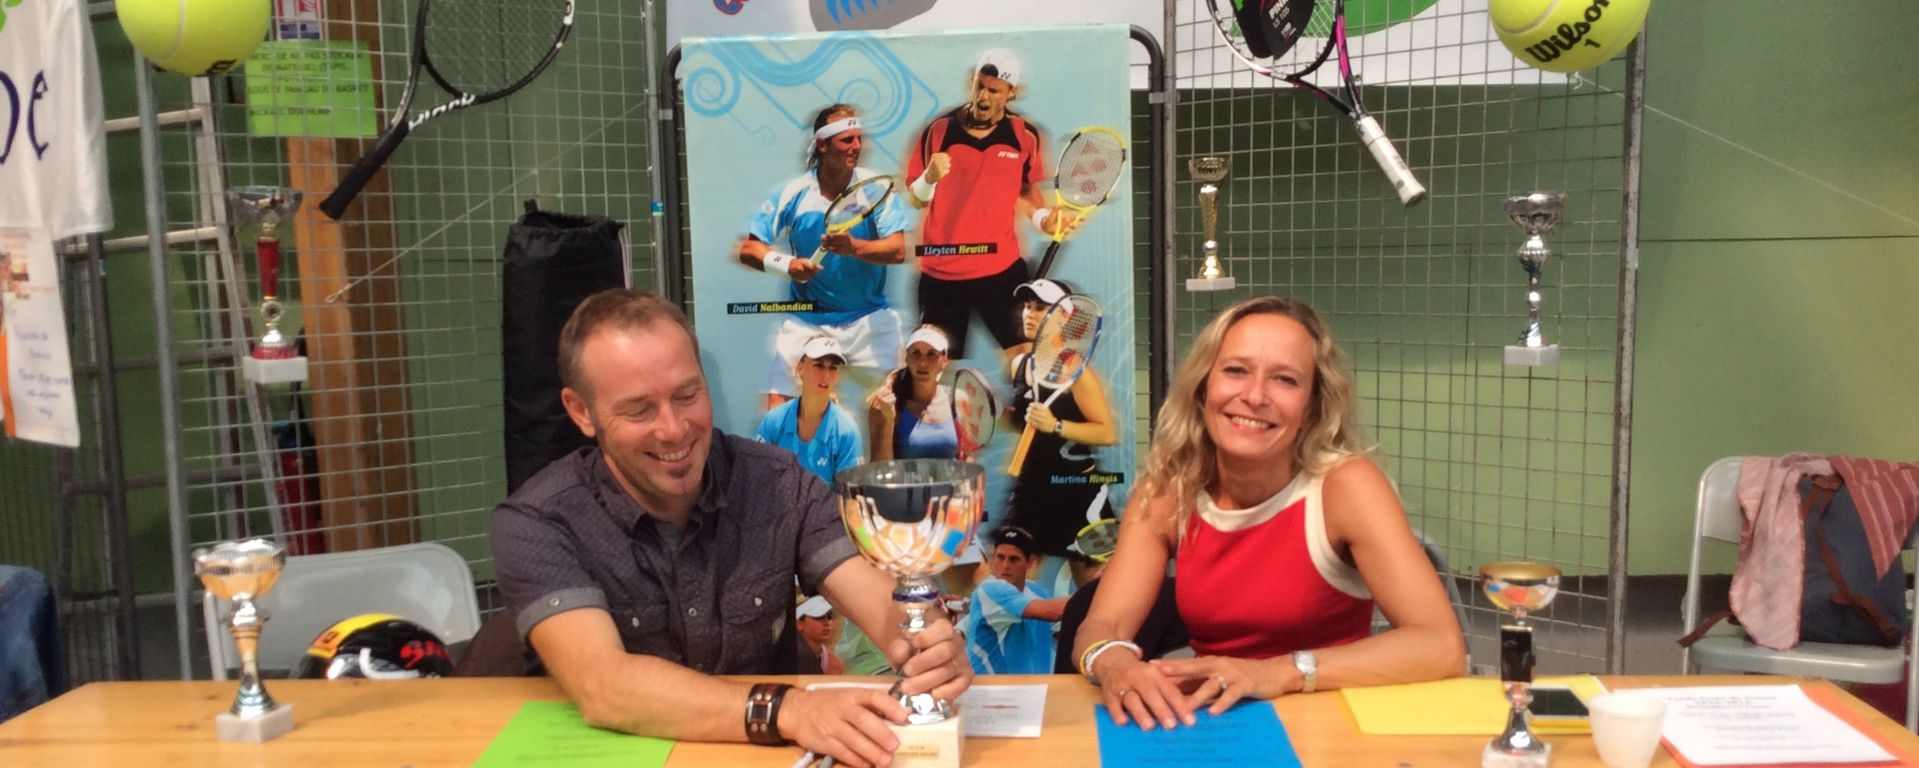 Le Tennis Club lors du Forum Associatif en 2015